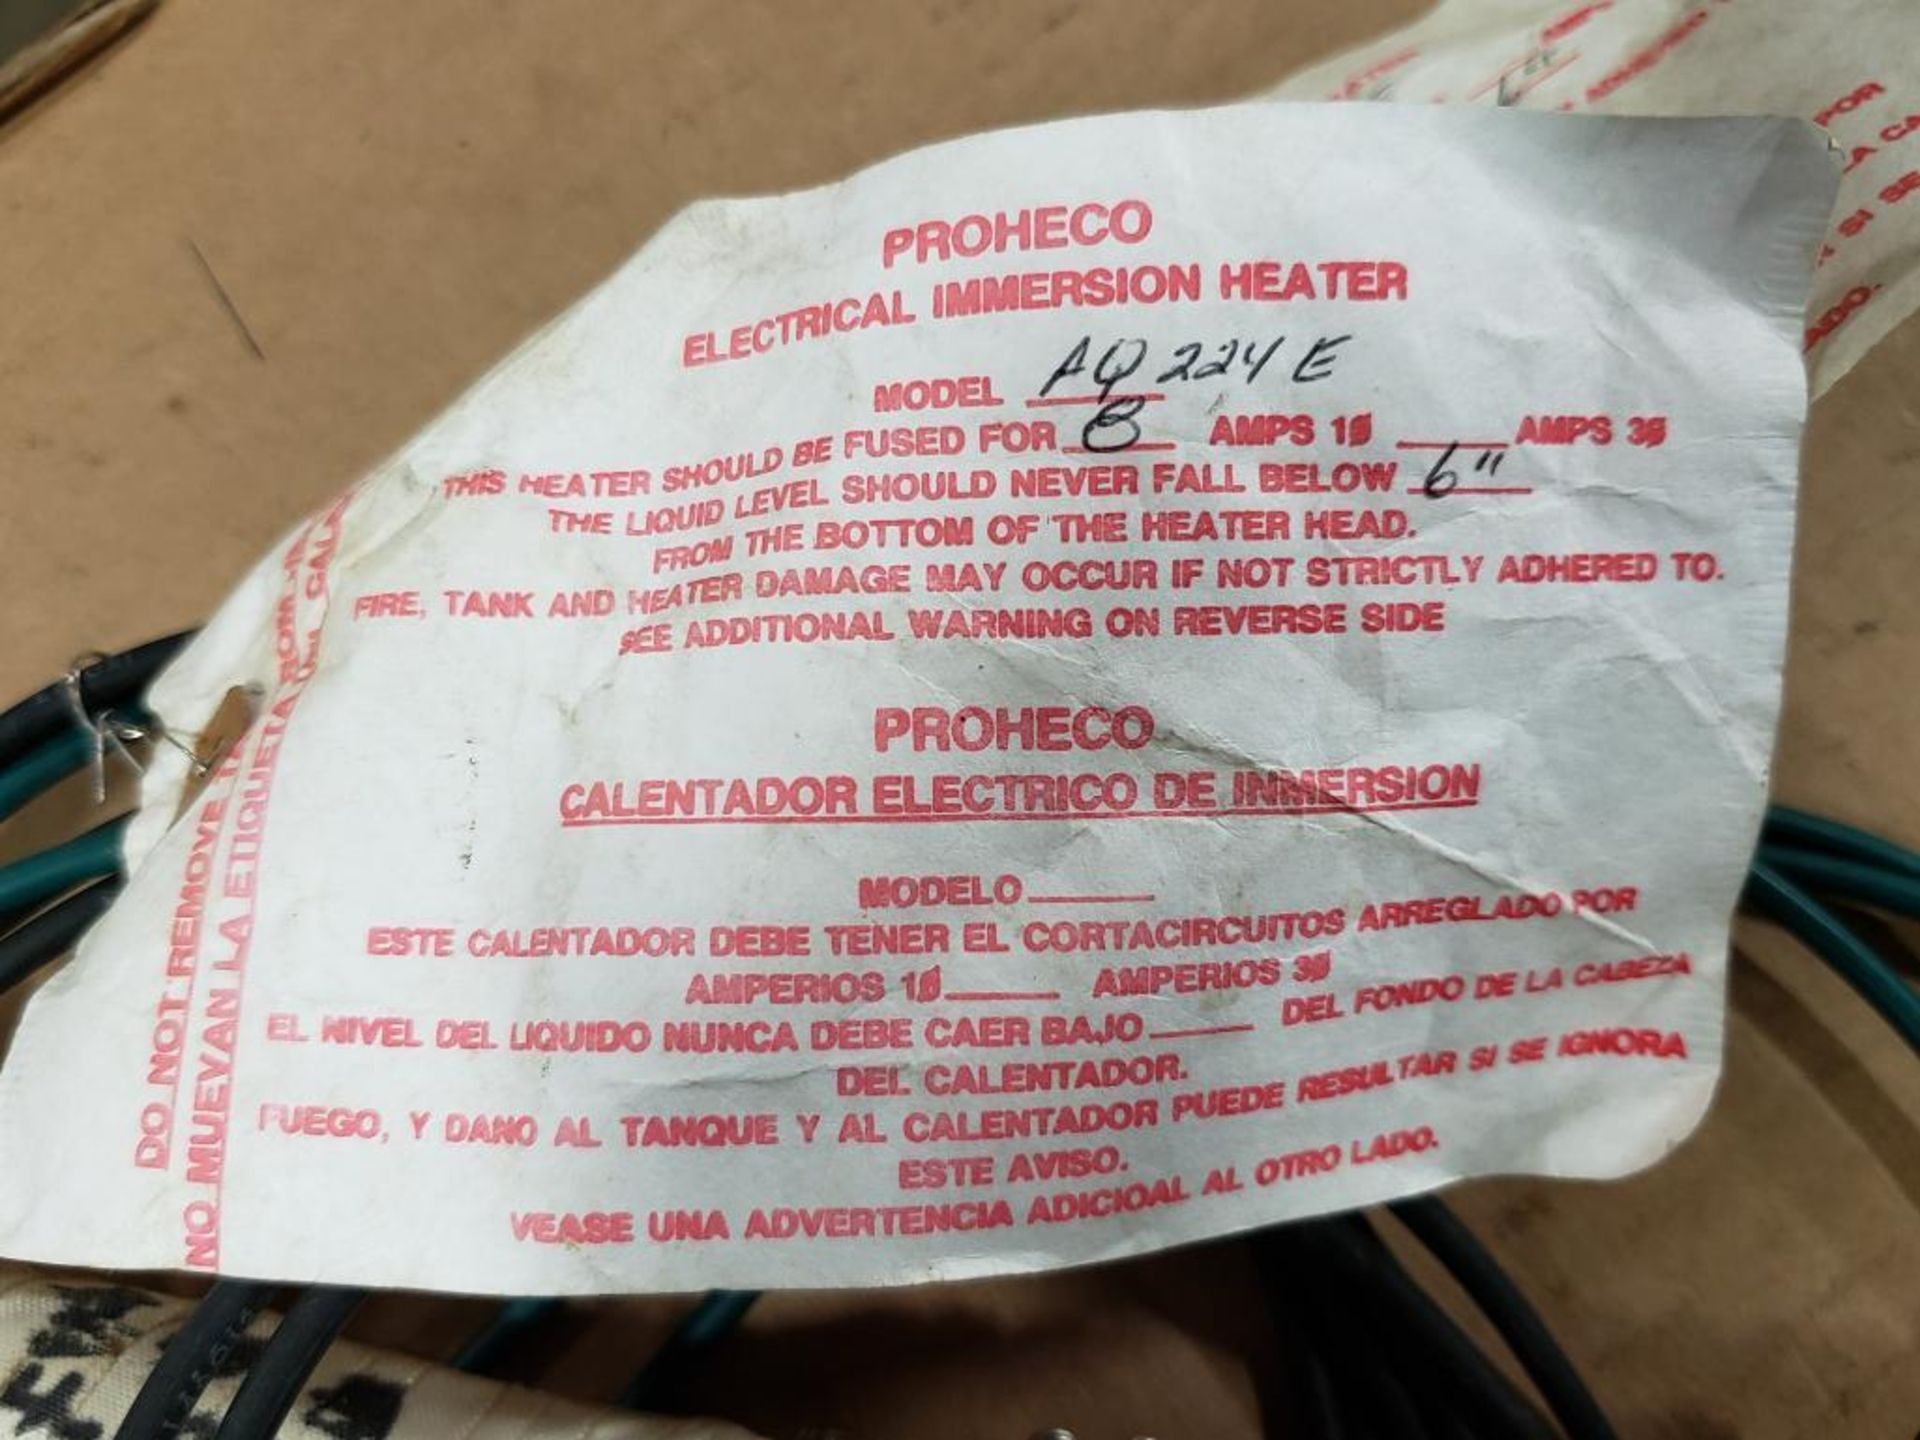 Qty 2 - Proheco AQ224E electrical immersion heater. - Image 3 of 6